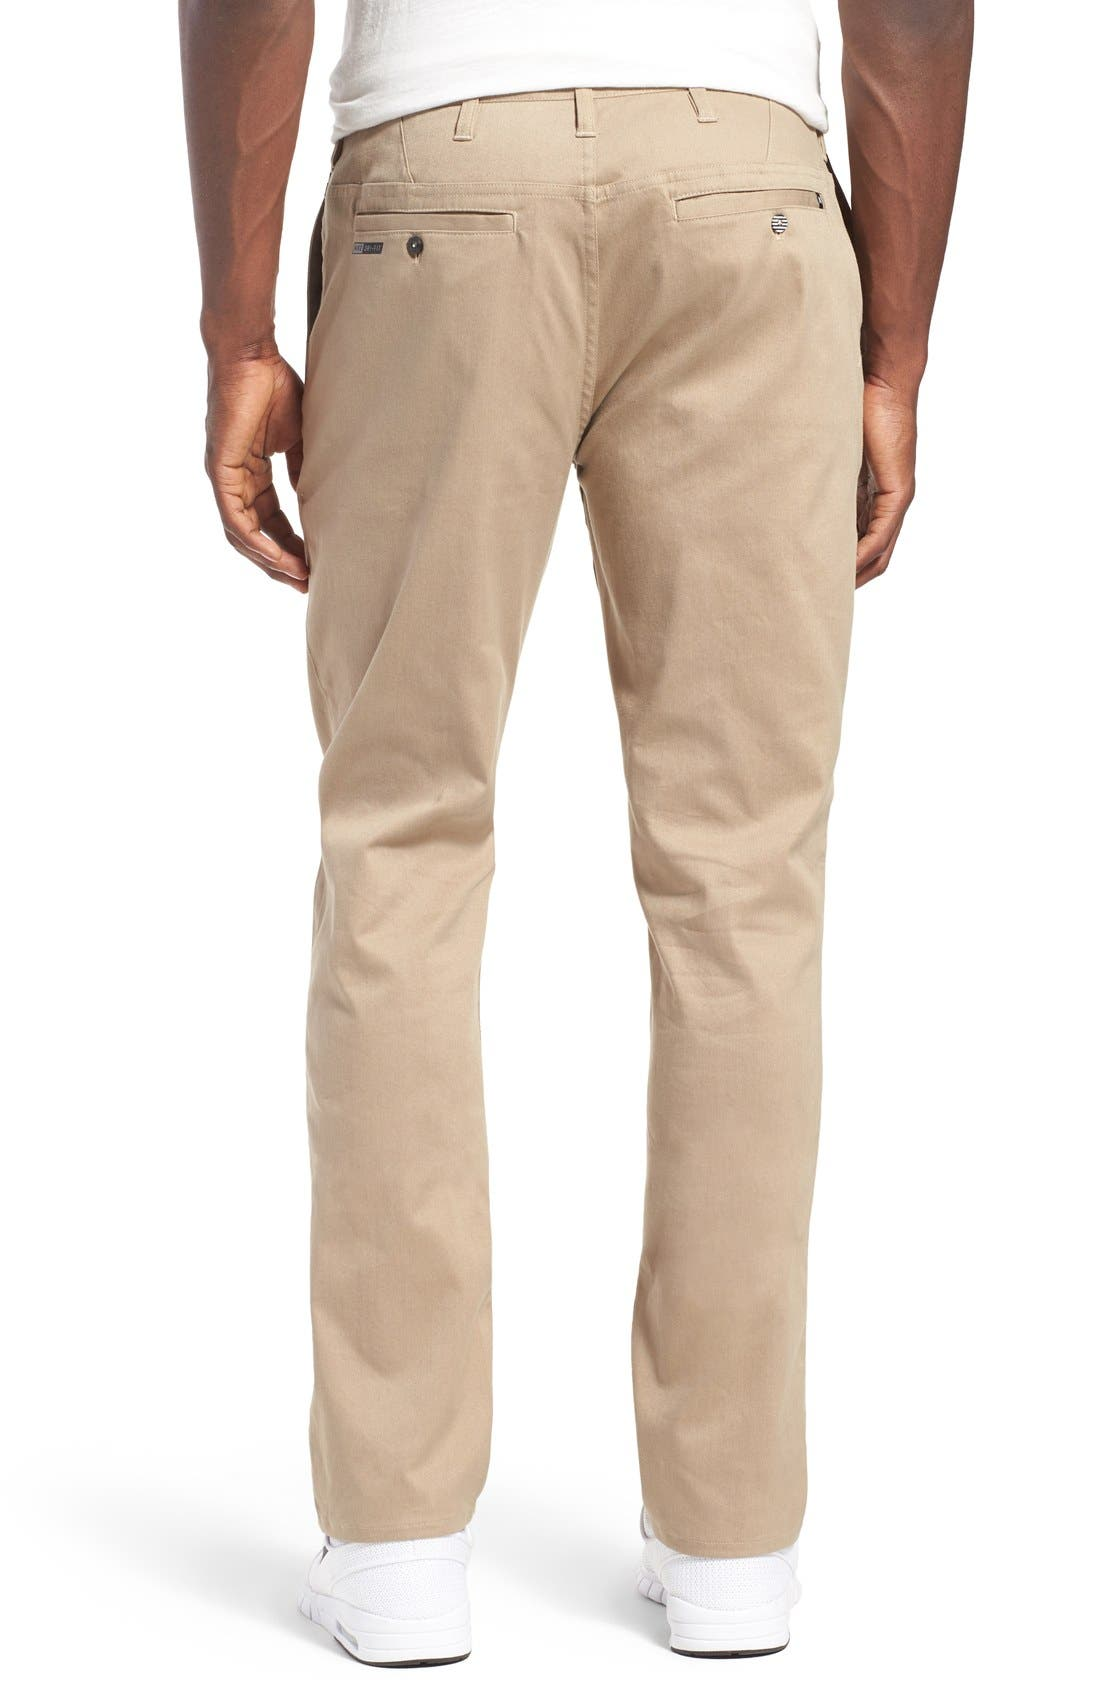 Dri-FIT Chinos,                             Alternate thumbnail 2, color,                             Beige